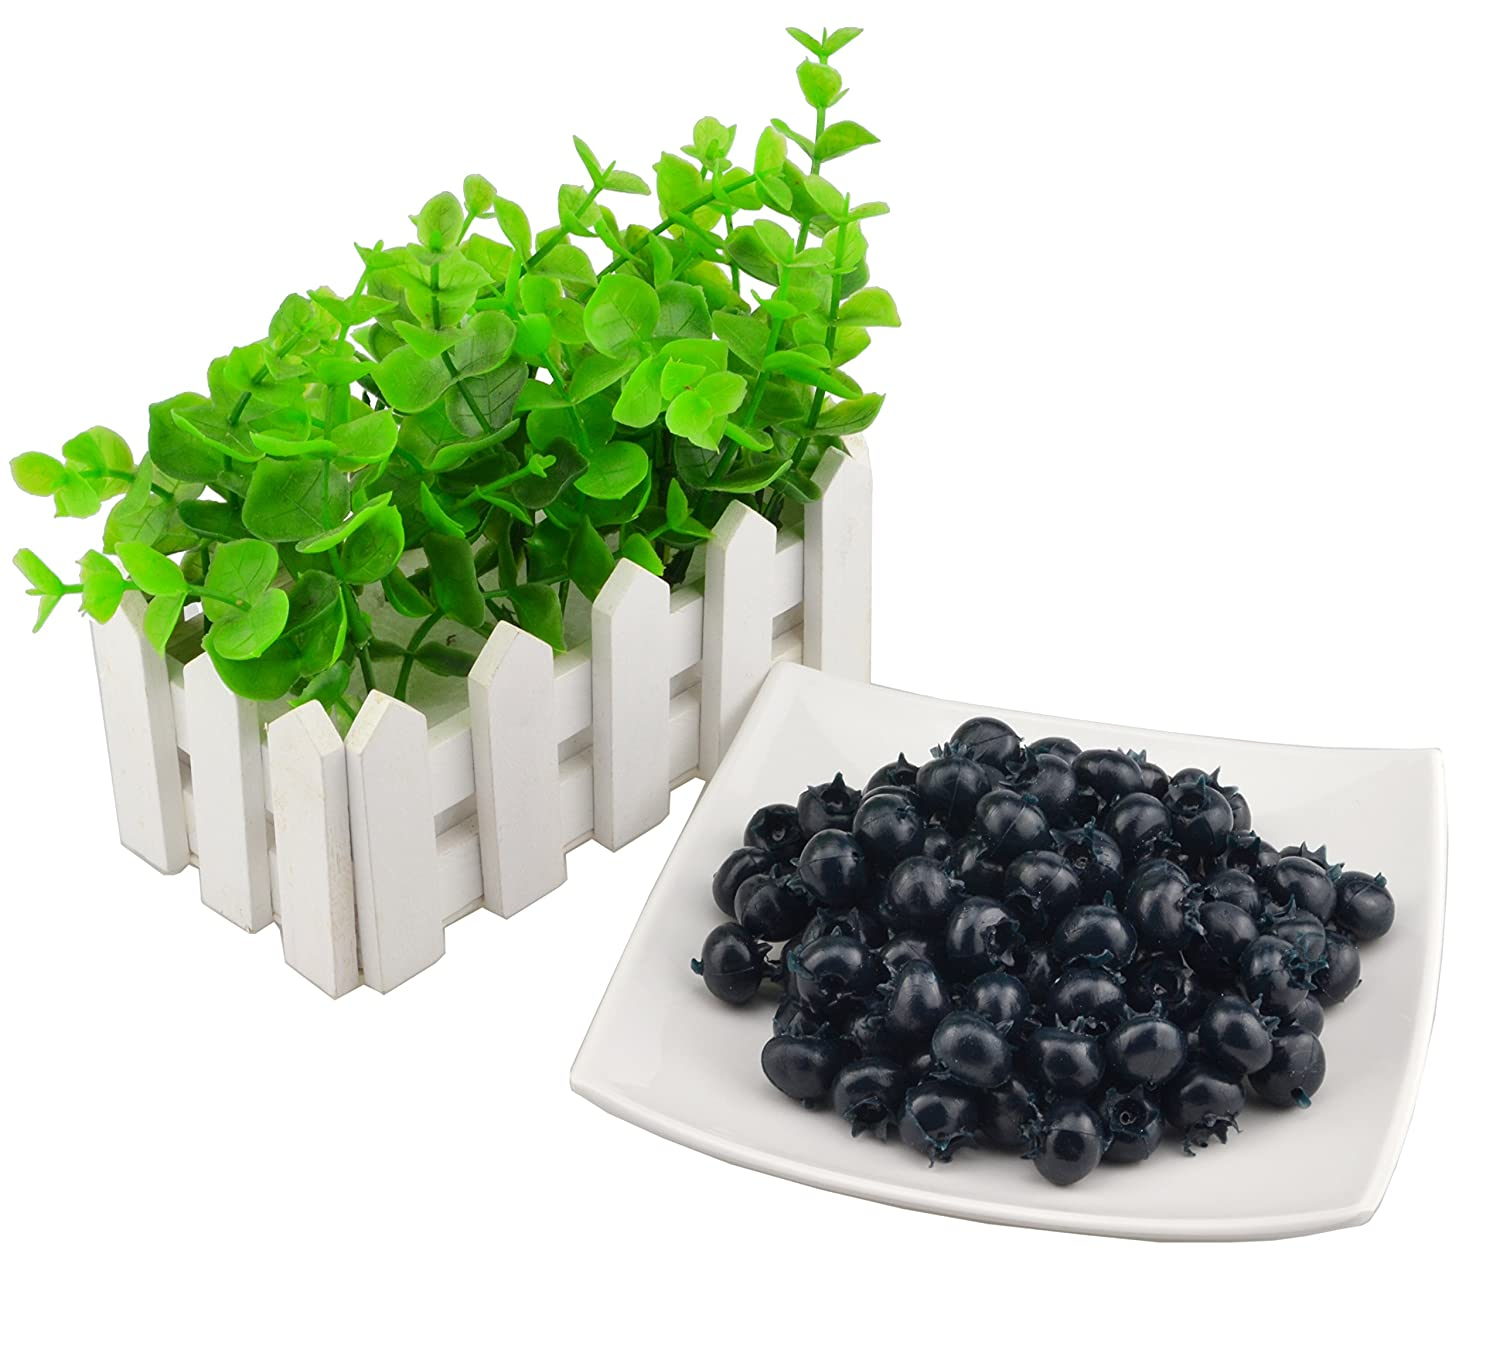 SAMYO Fake Fruit Blueberries Simulation Artificial Lifelike Blueberry for Home Kitchen Party Wedding Decoration Photography 50 Pcs Set